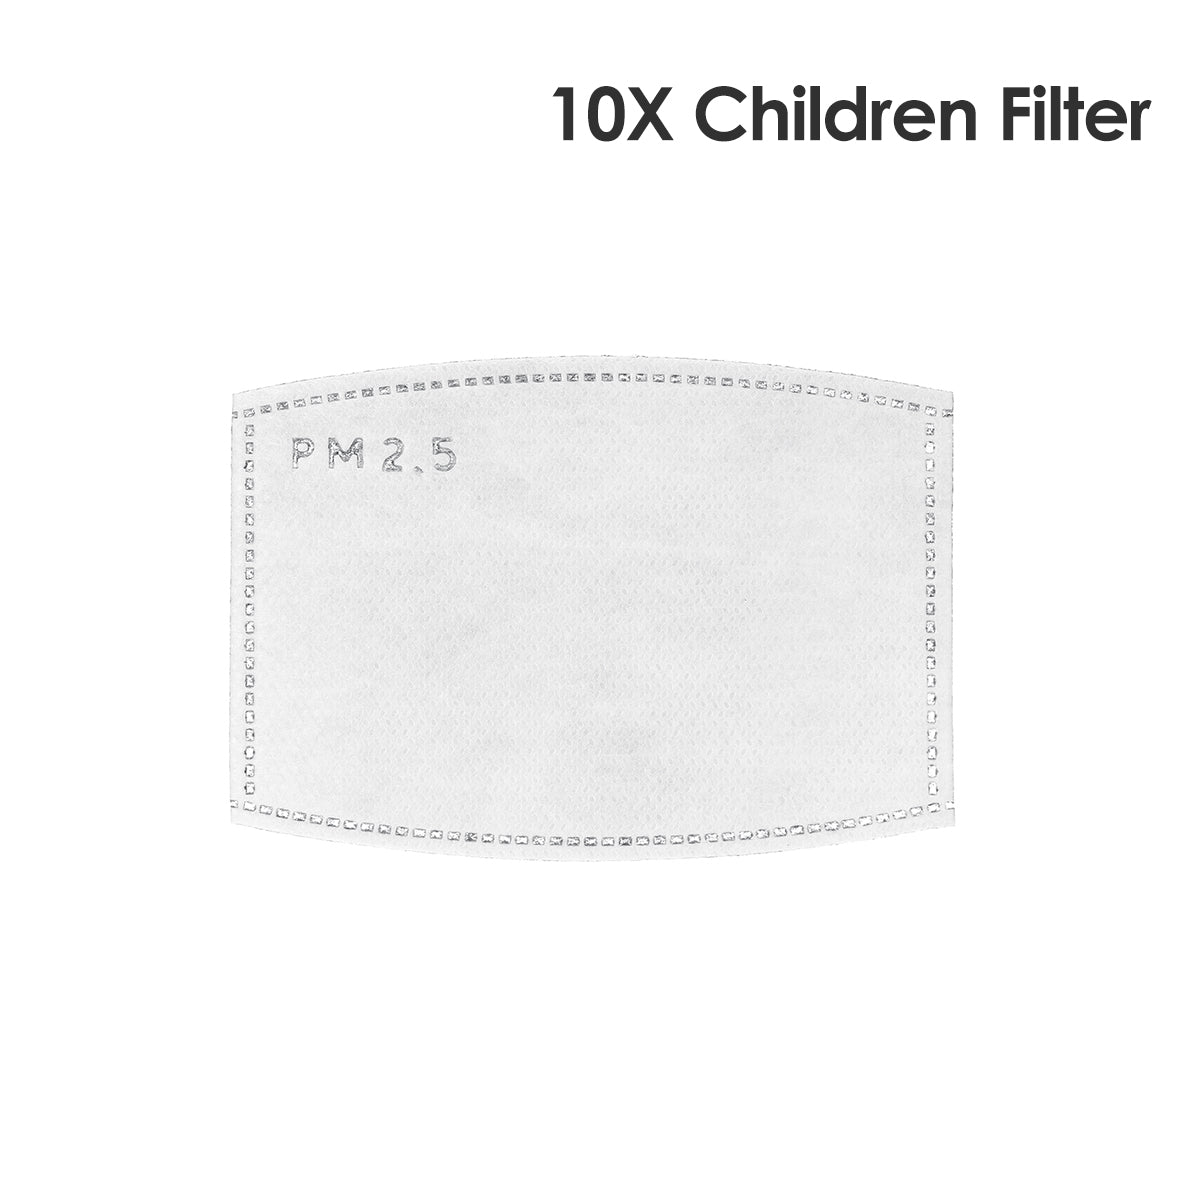 Children Kid Face Mask Valved Anti-dust Filter Mask Washable with 10x Filters